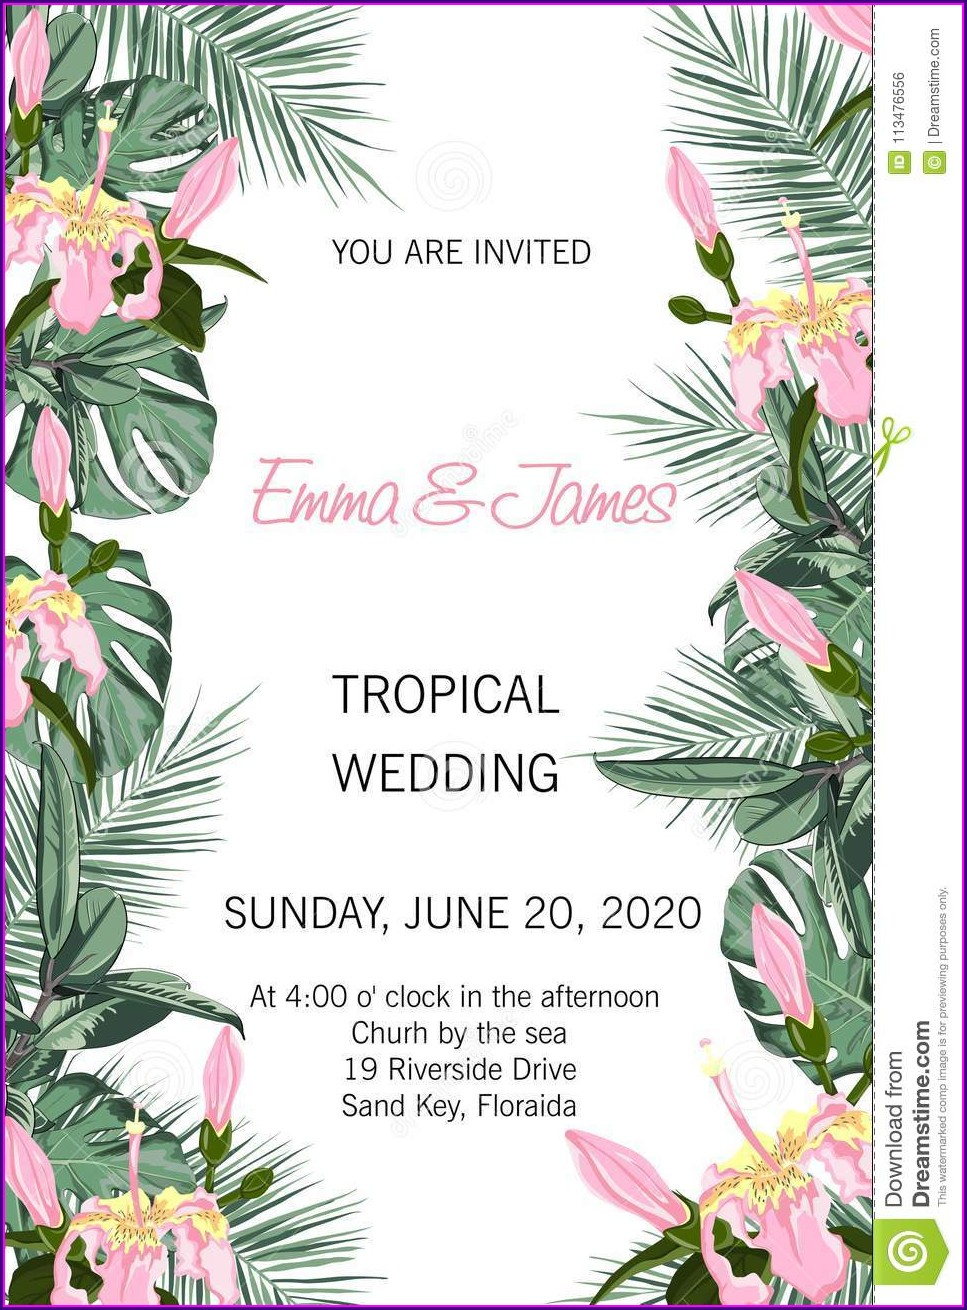 Vector Wedding Invitation Background Hd